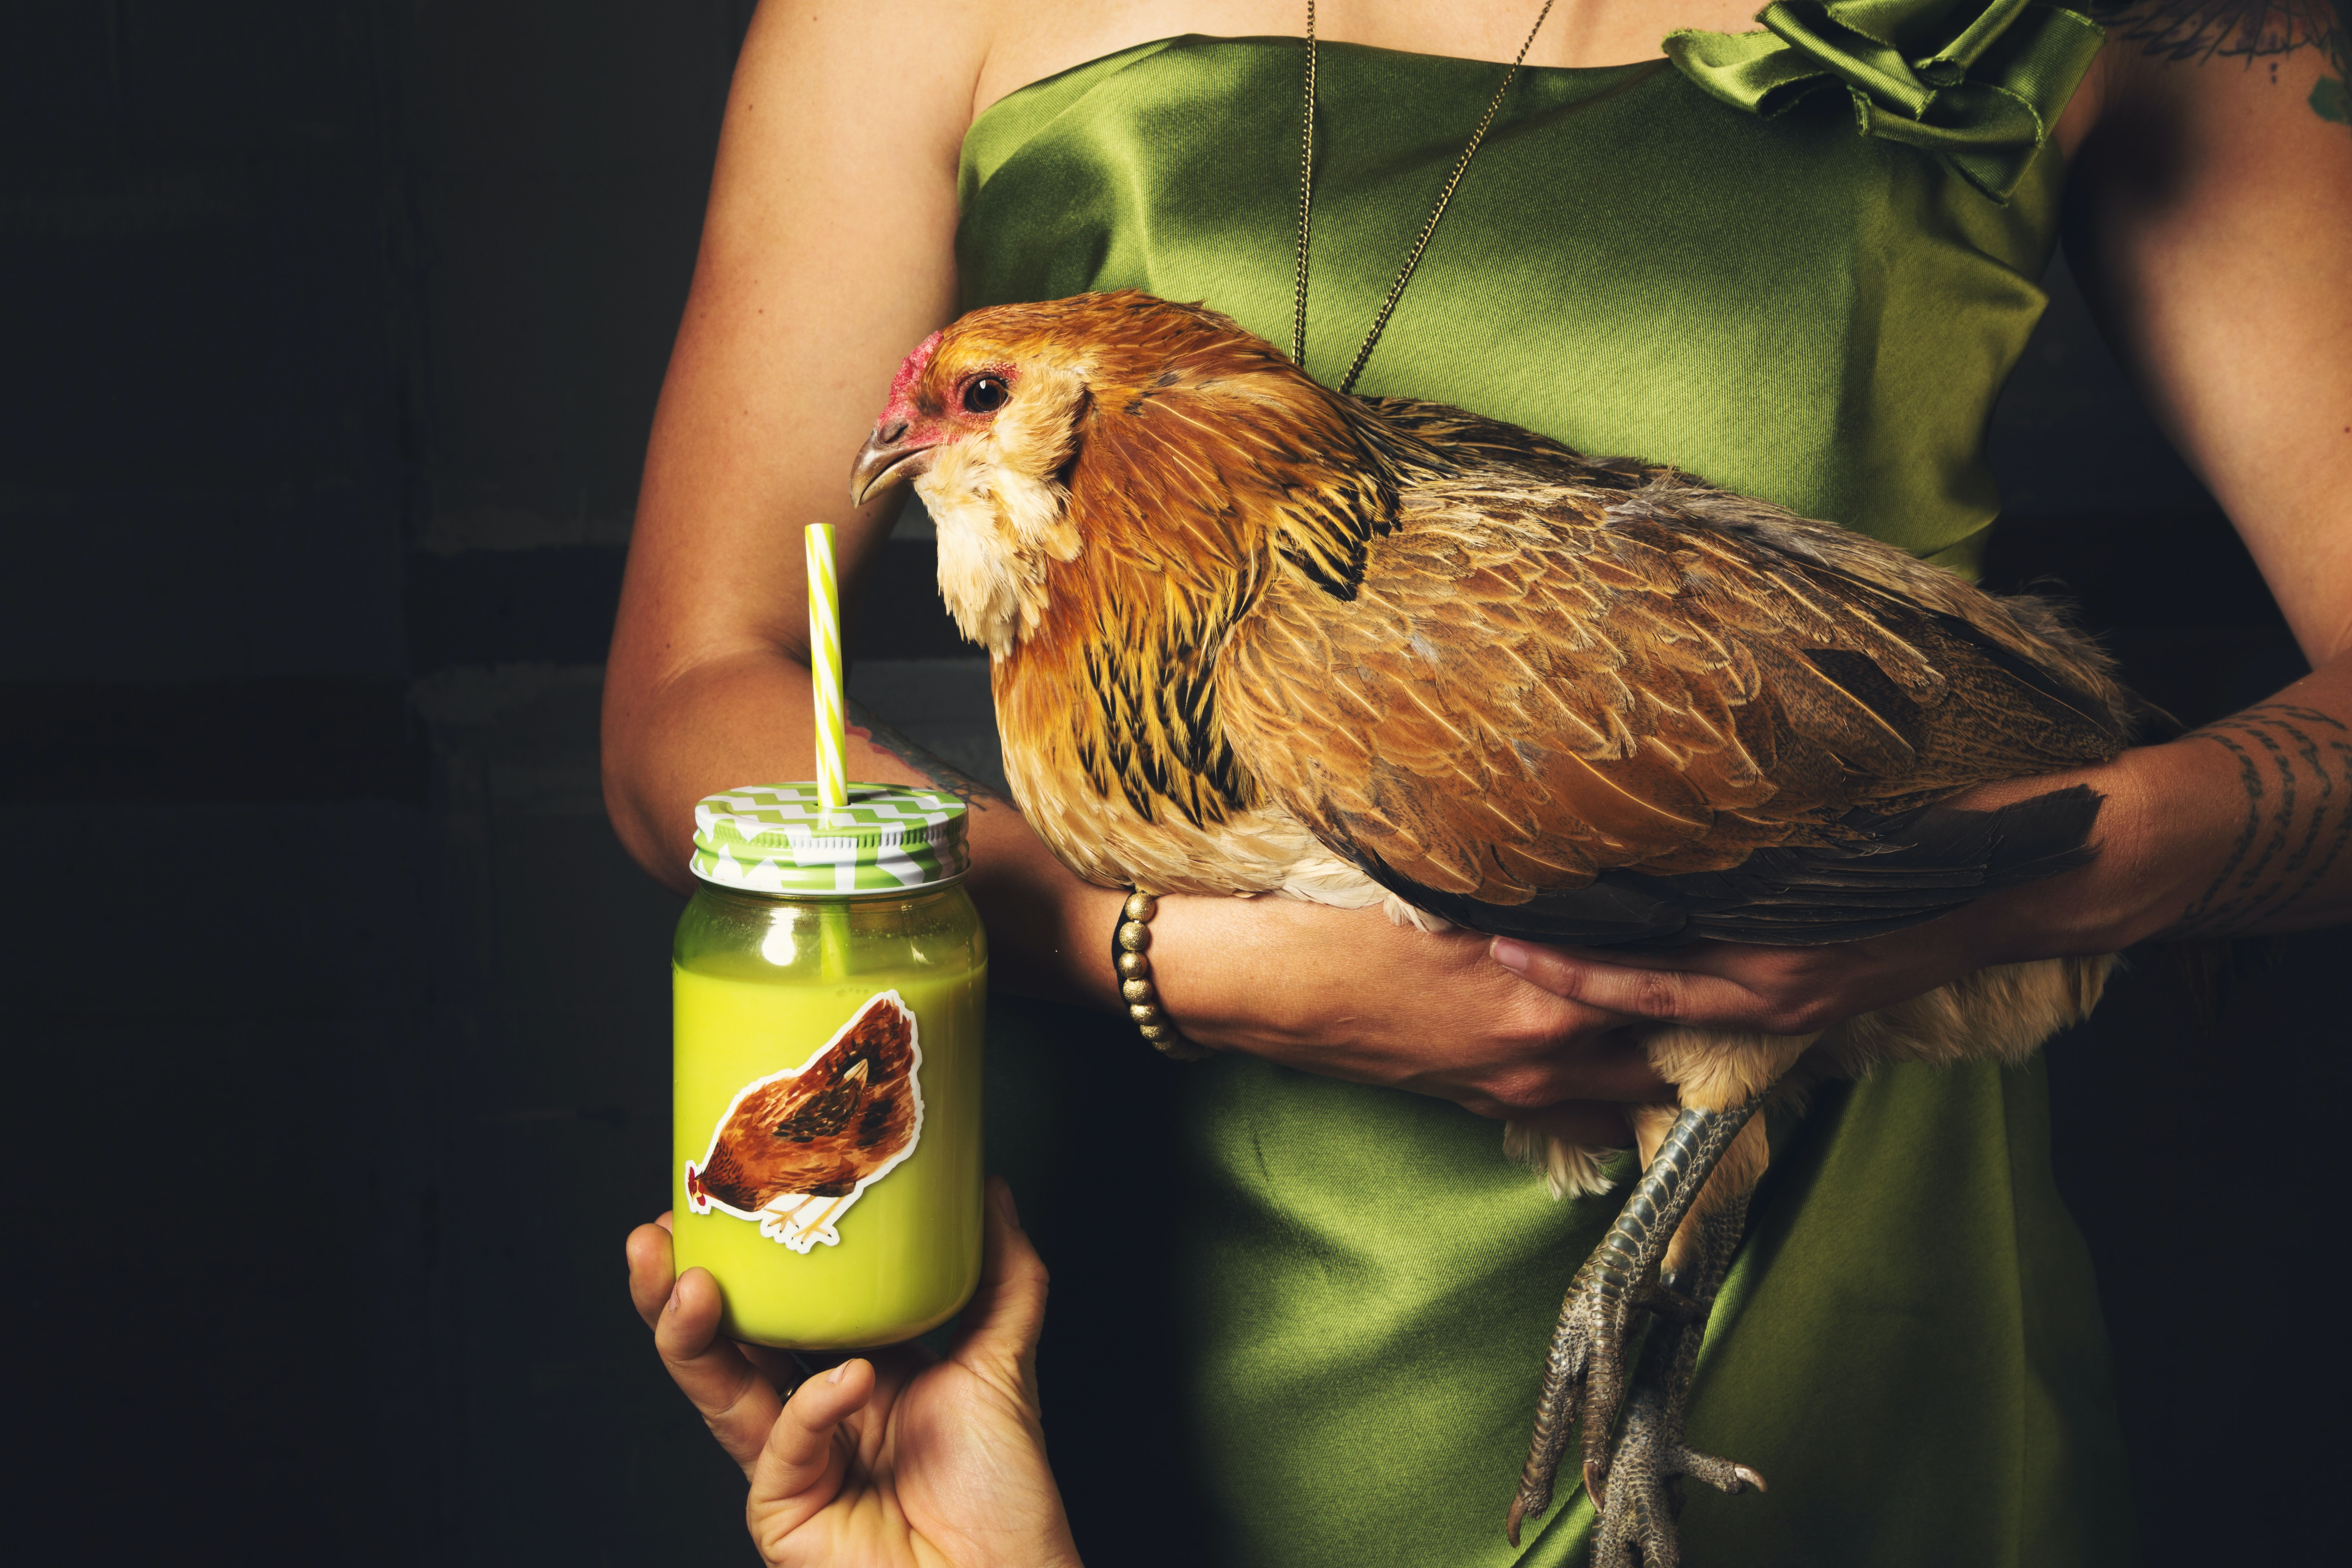 A person holding a green beverage in a jar in front of a large chicken in a woman's arms